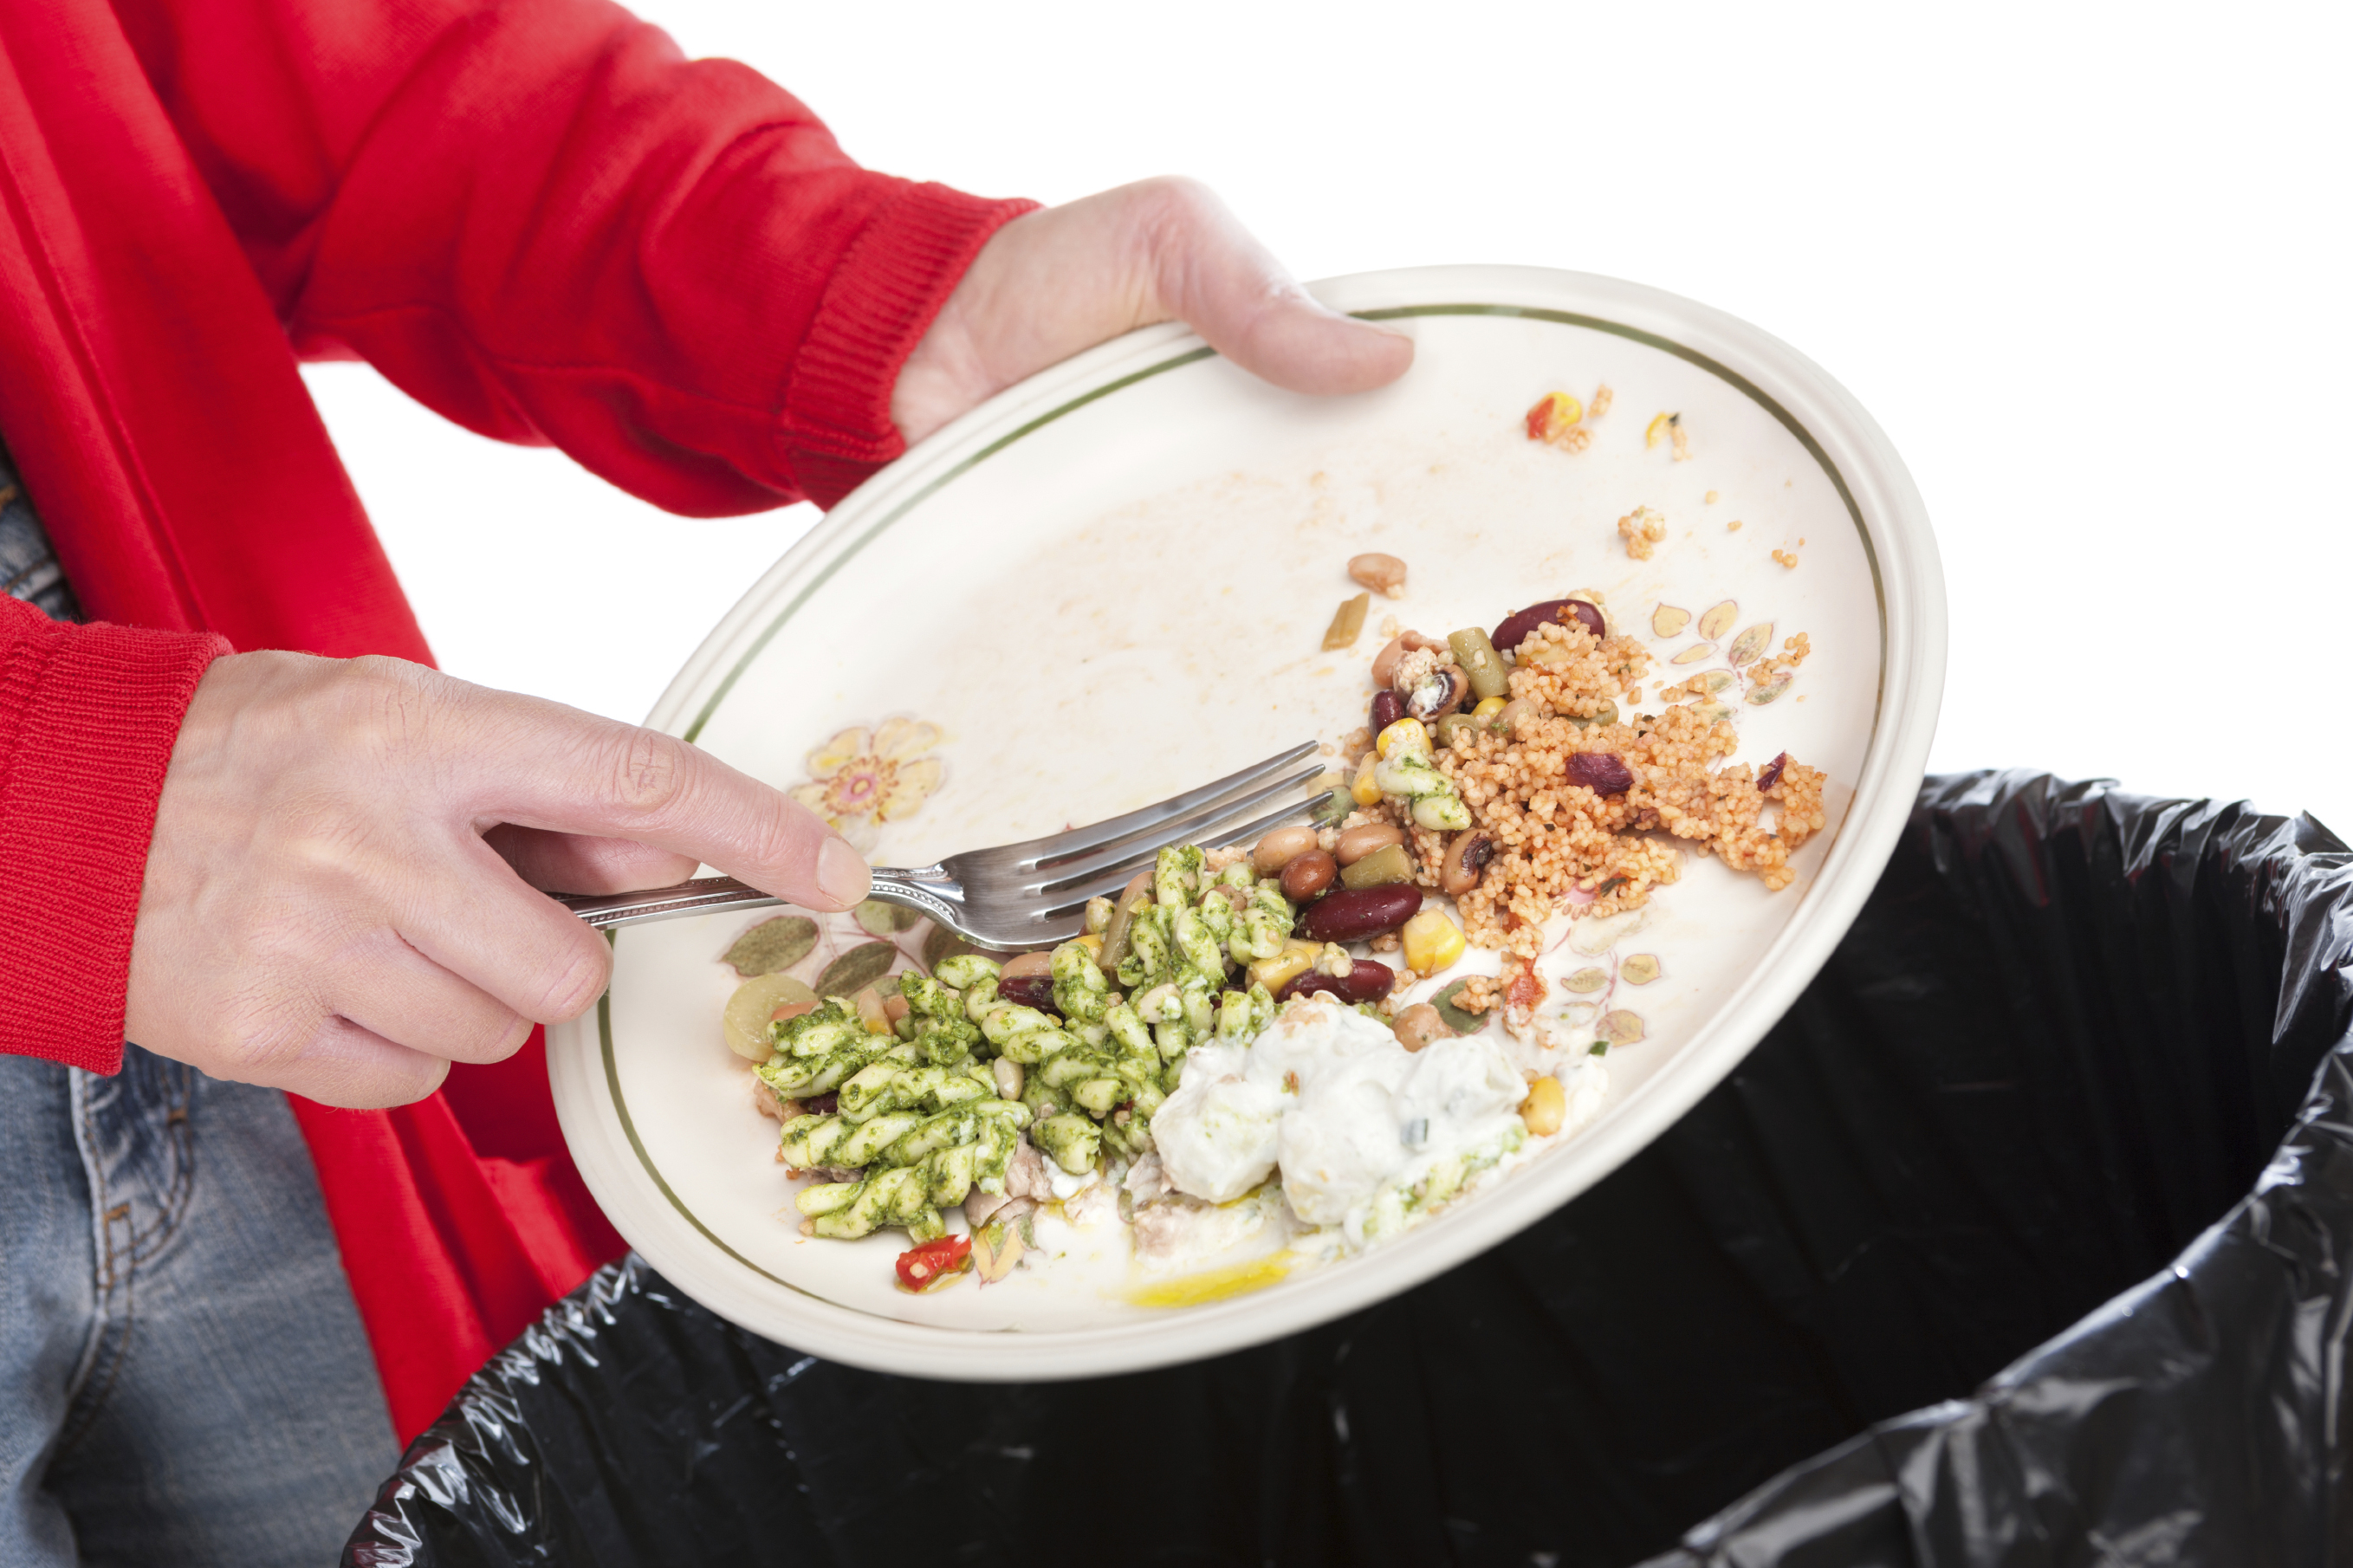 Close-up of a woman sweeping the leftovers from a meal into a garbage bin. The background is pure white.